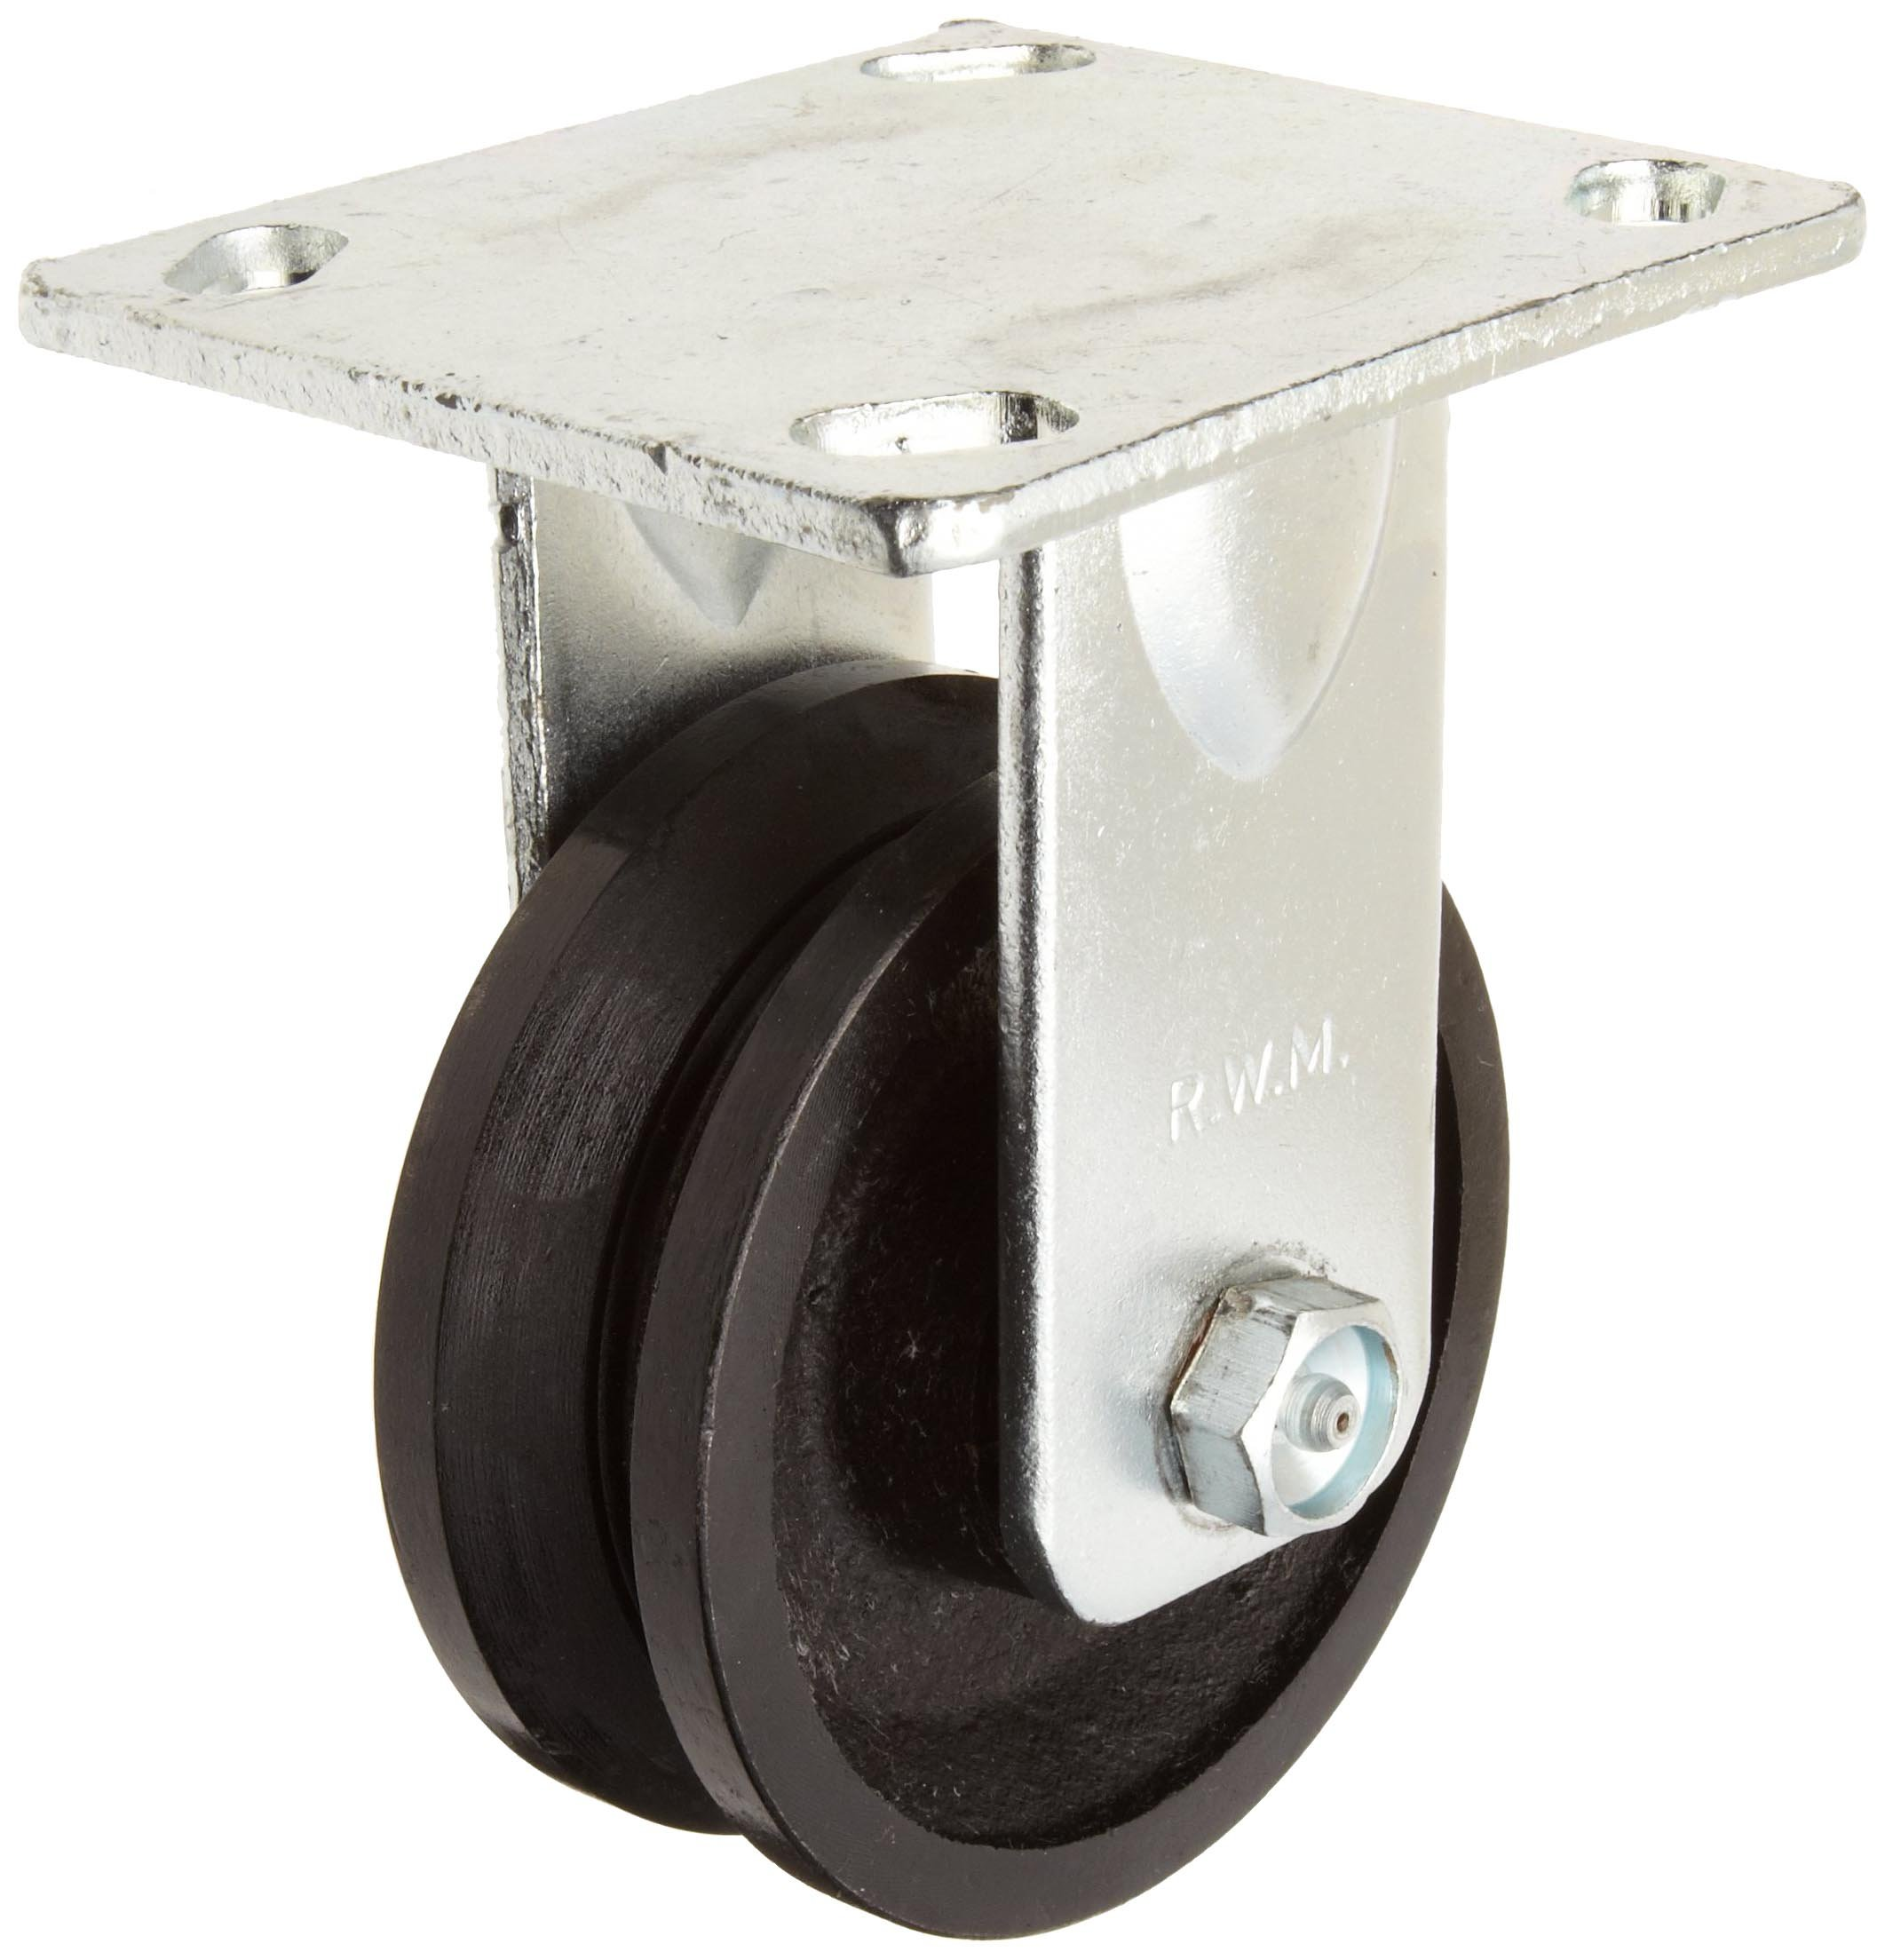 RWM Casters 40 Series Plate Caster, Rigid, V-Groove Iron Wheel, Roller Bearing, 700 lbs Capacity, 4'' Wheel Dia, 1-1/2'' Wheel Width, 5-5/8'' Mount Height, 4-1/2'' Plate Length, 4'' Plate Width by RWM Casters